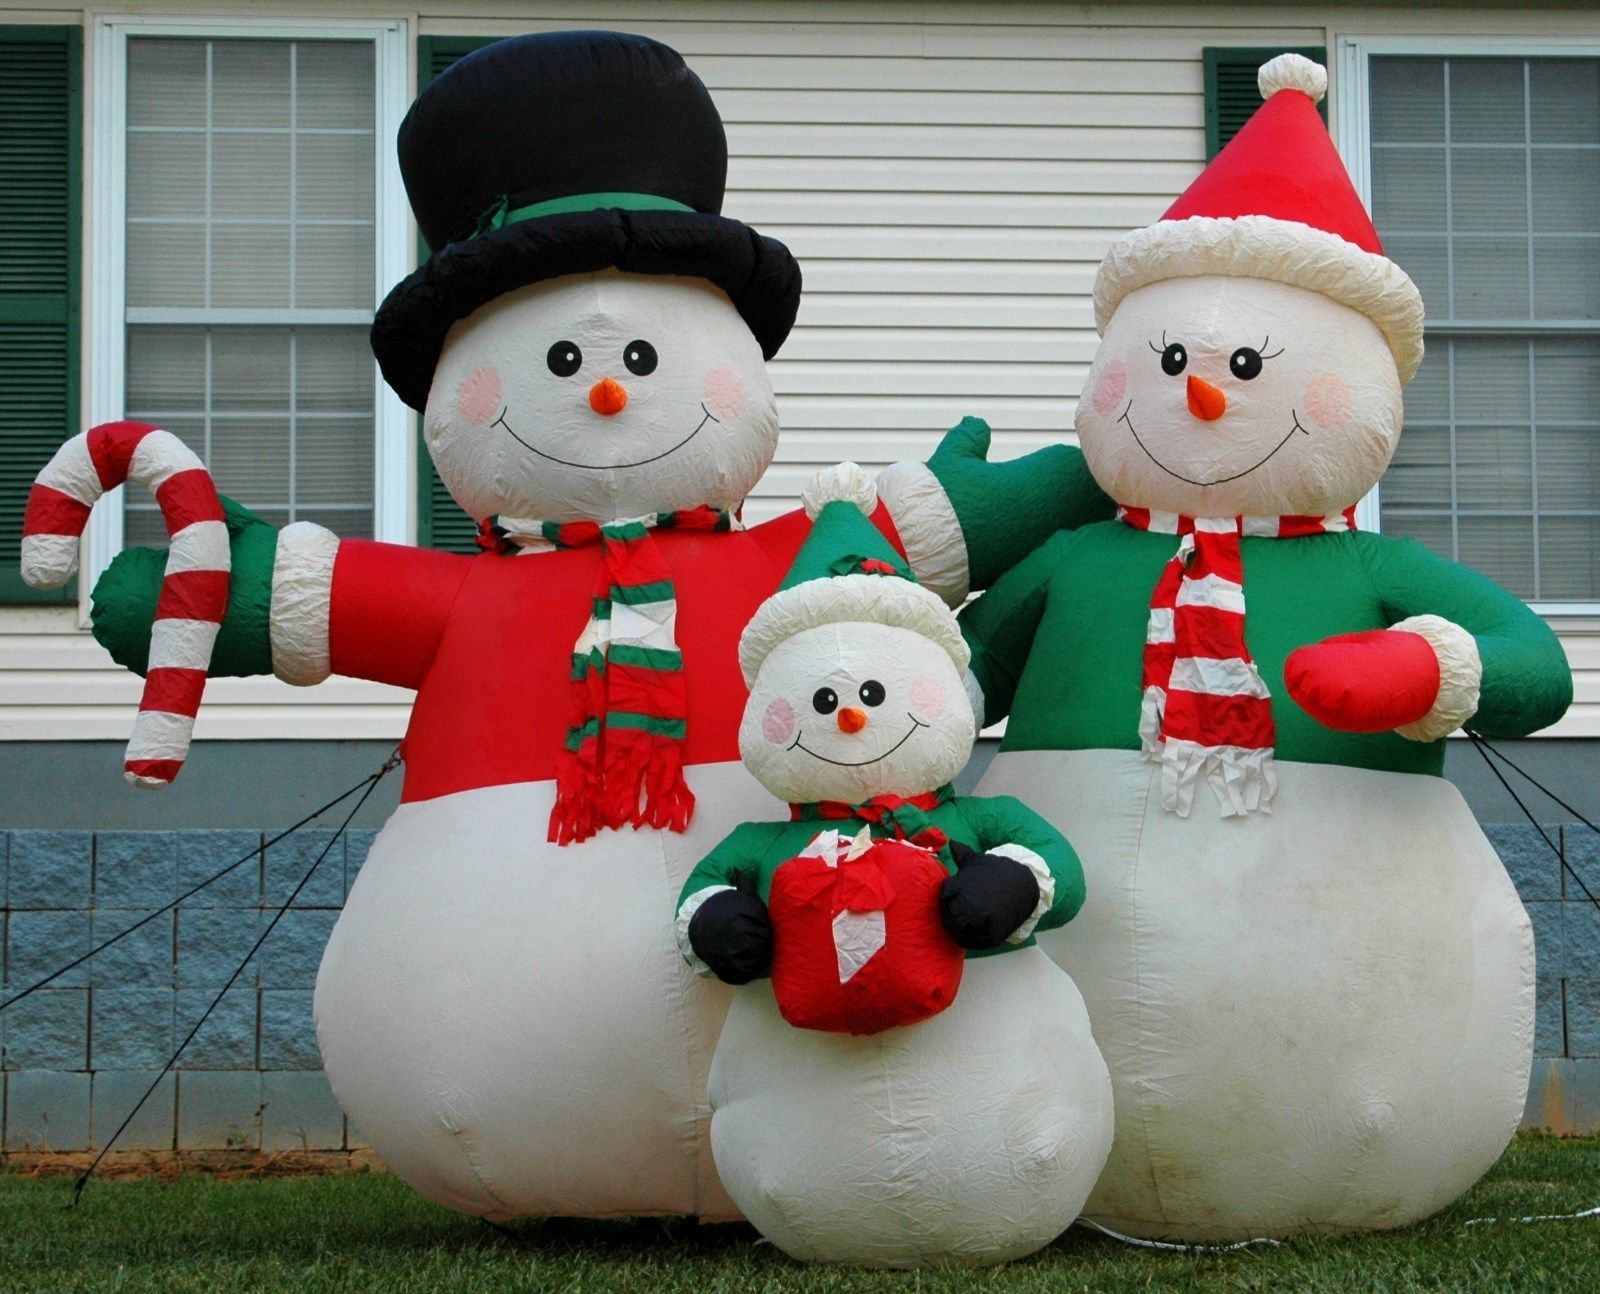 gemmy 6ft snowman family lighted christmas airblown inflatable yard displayjpg - Christmas Airblown Inflatables